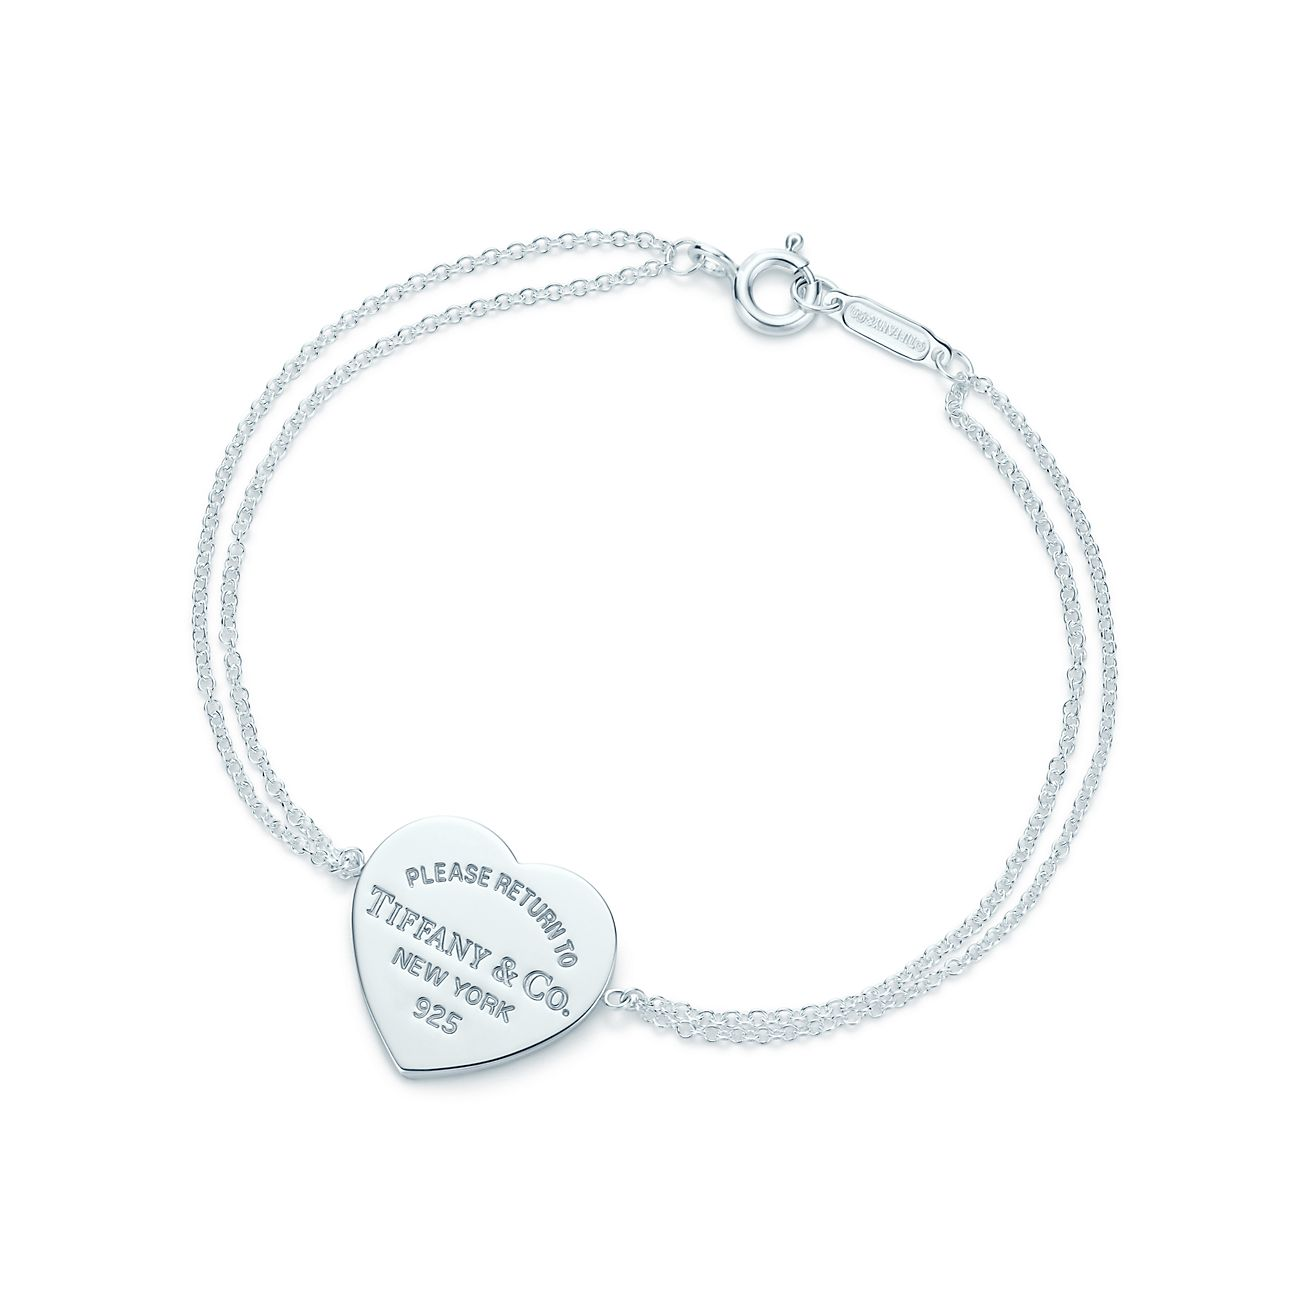 Return to Tiffany mini round tag in sterling silver on a bead bracelet - Size 6.5 in Tiffany & Co.